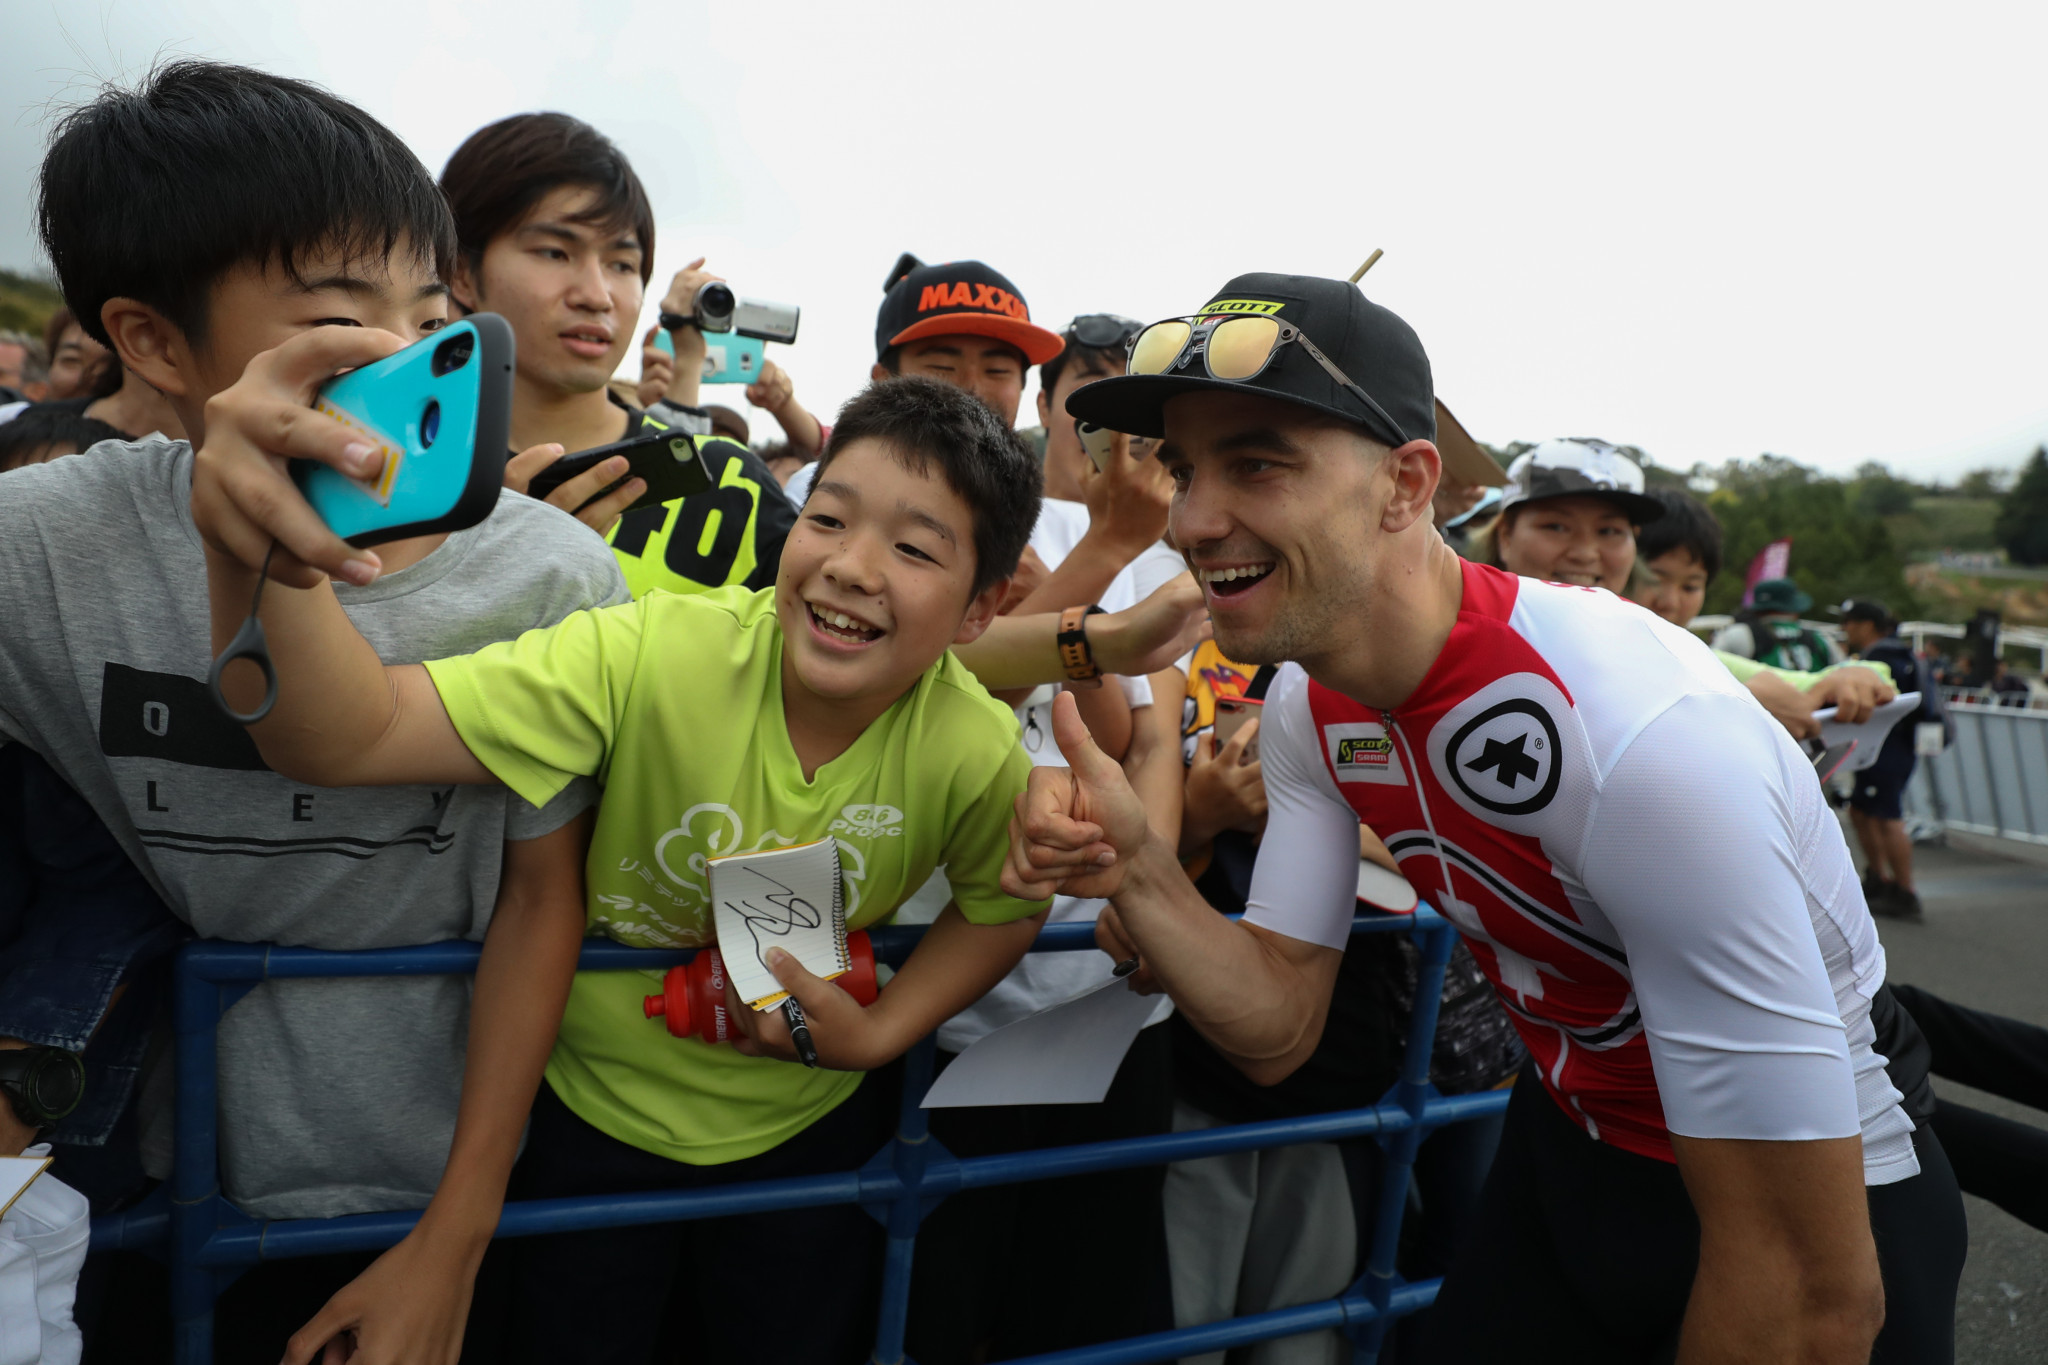 Tokyo 2020 mountain bike course earns praise from Olympic champion